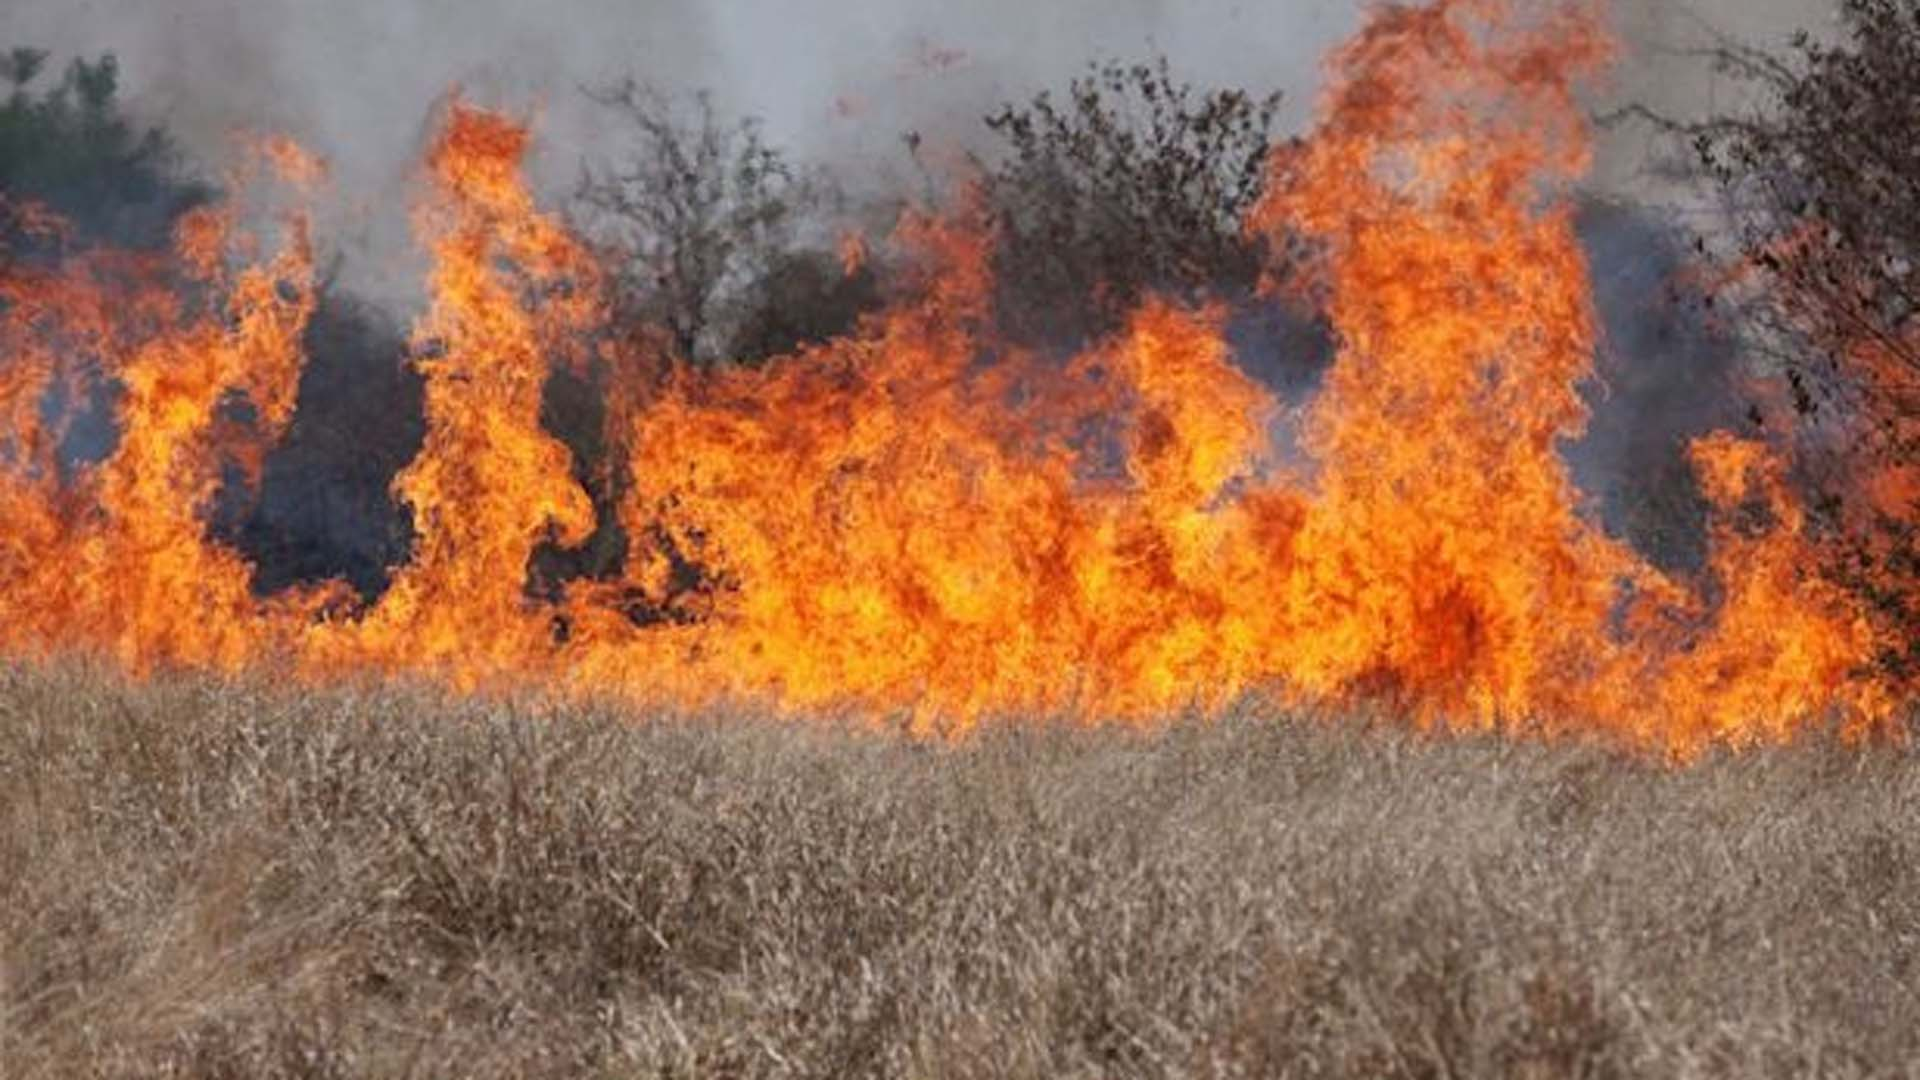 A wildfire fueled by invasive cheatgrass burns fragile sage steppe habitat in this undated photo. (Credit: USDA/NRCS)